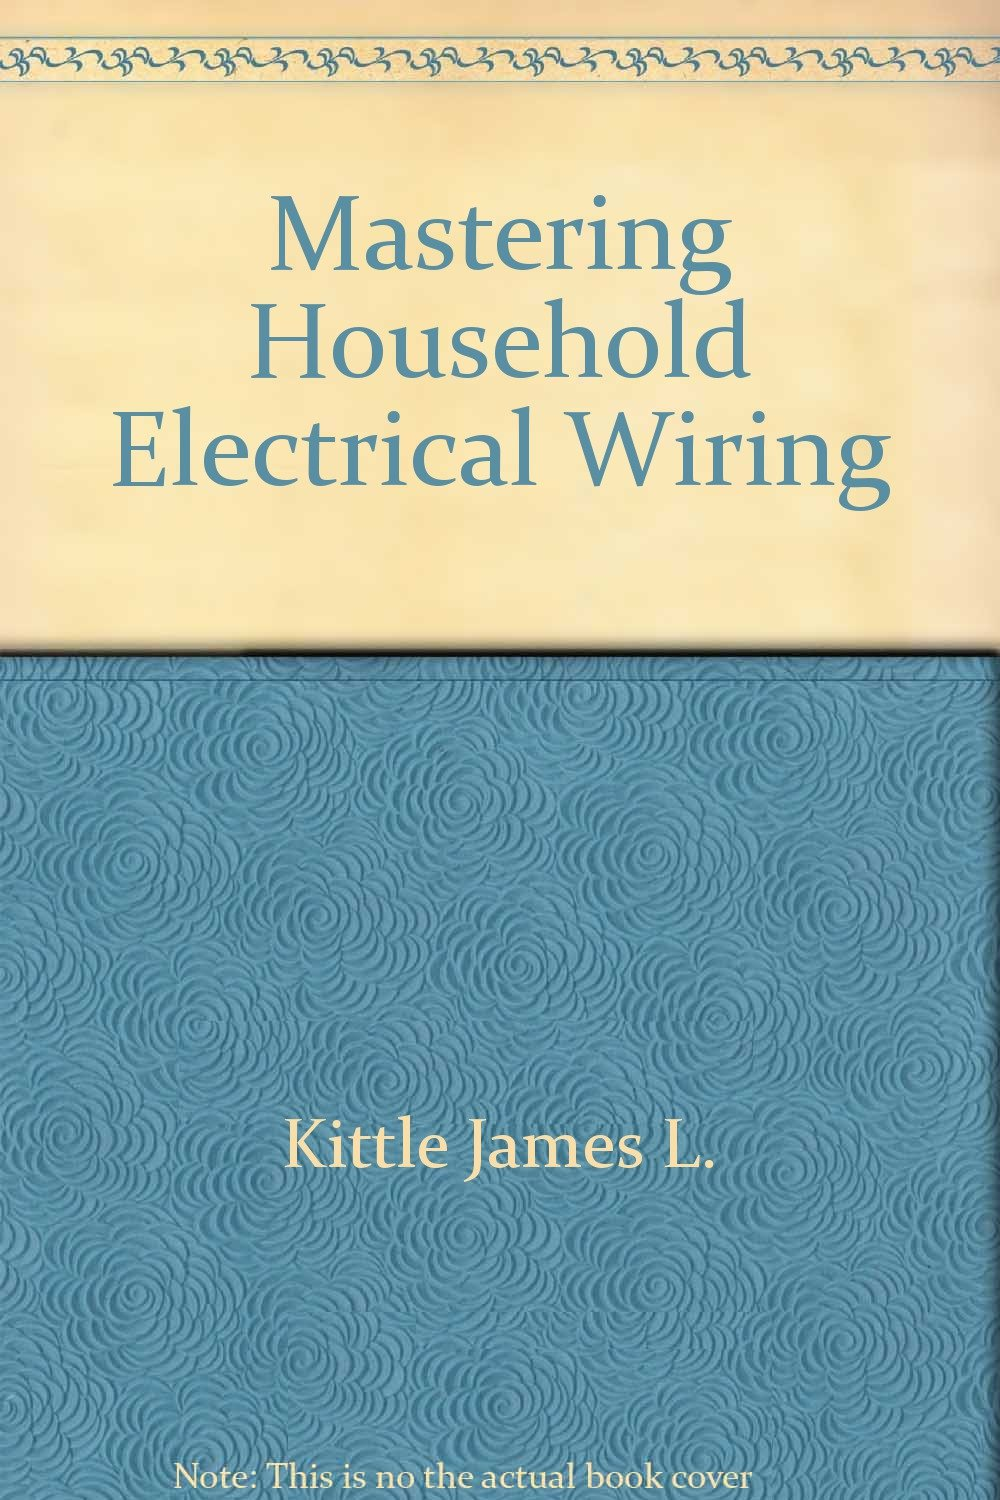 Mastering Household Electrical Wiring James L Kittle 9780830609871 Of Books